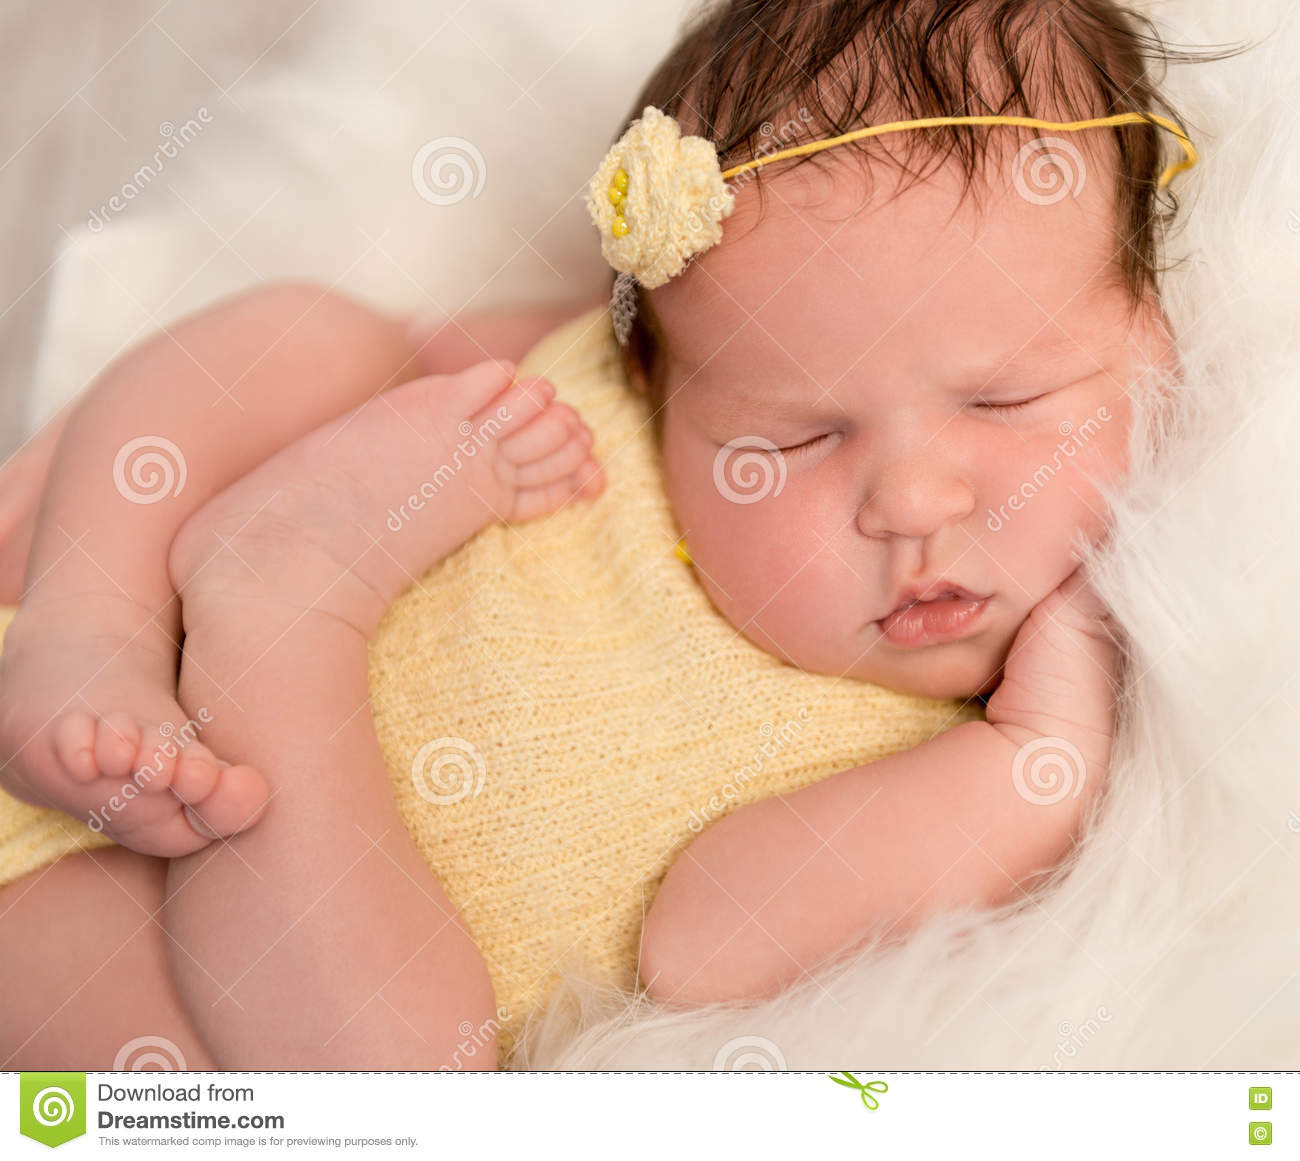 5f769d1de Lovely Baby In Yellow Romper Sleeping With Legs Crossed Stock Image ...